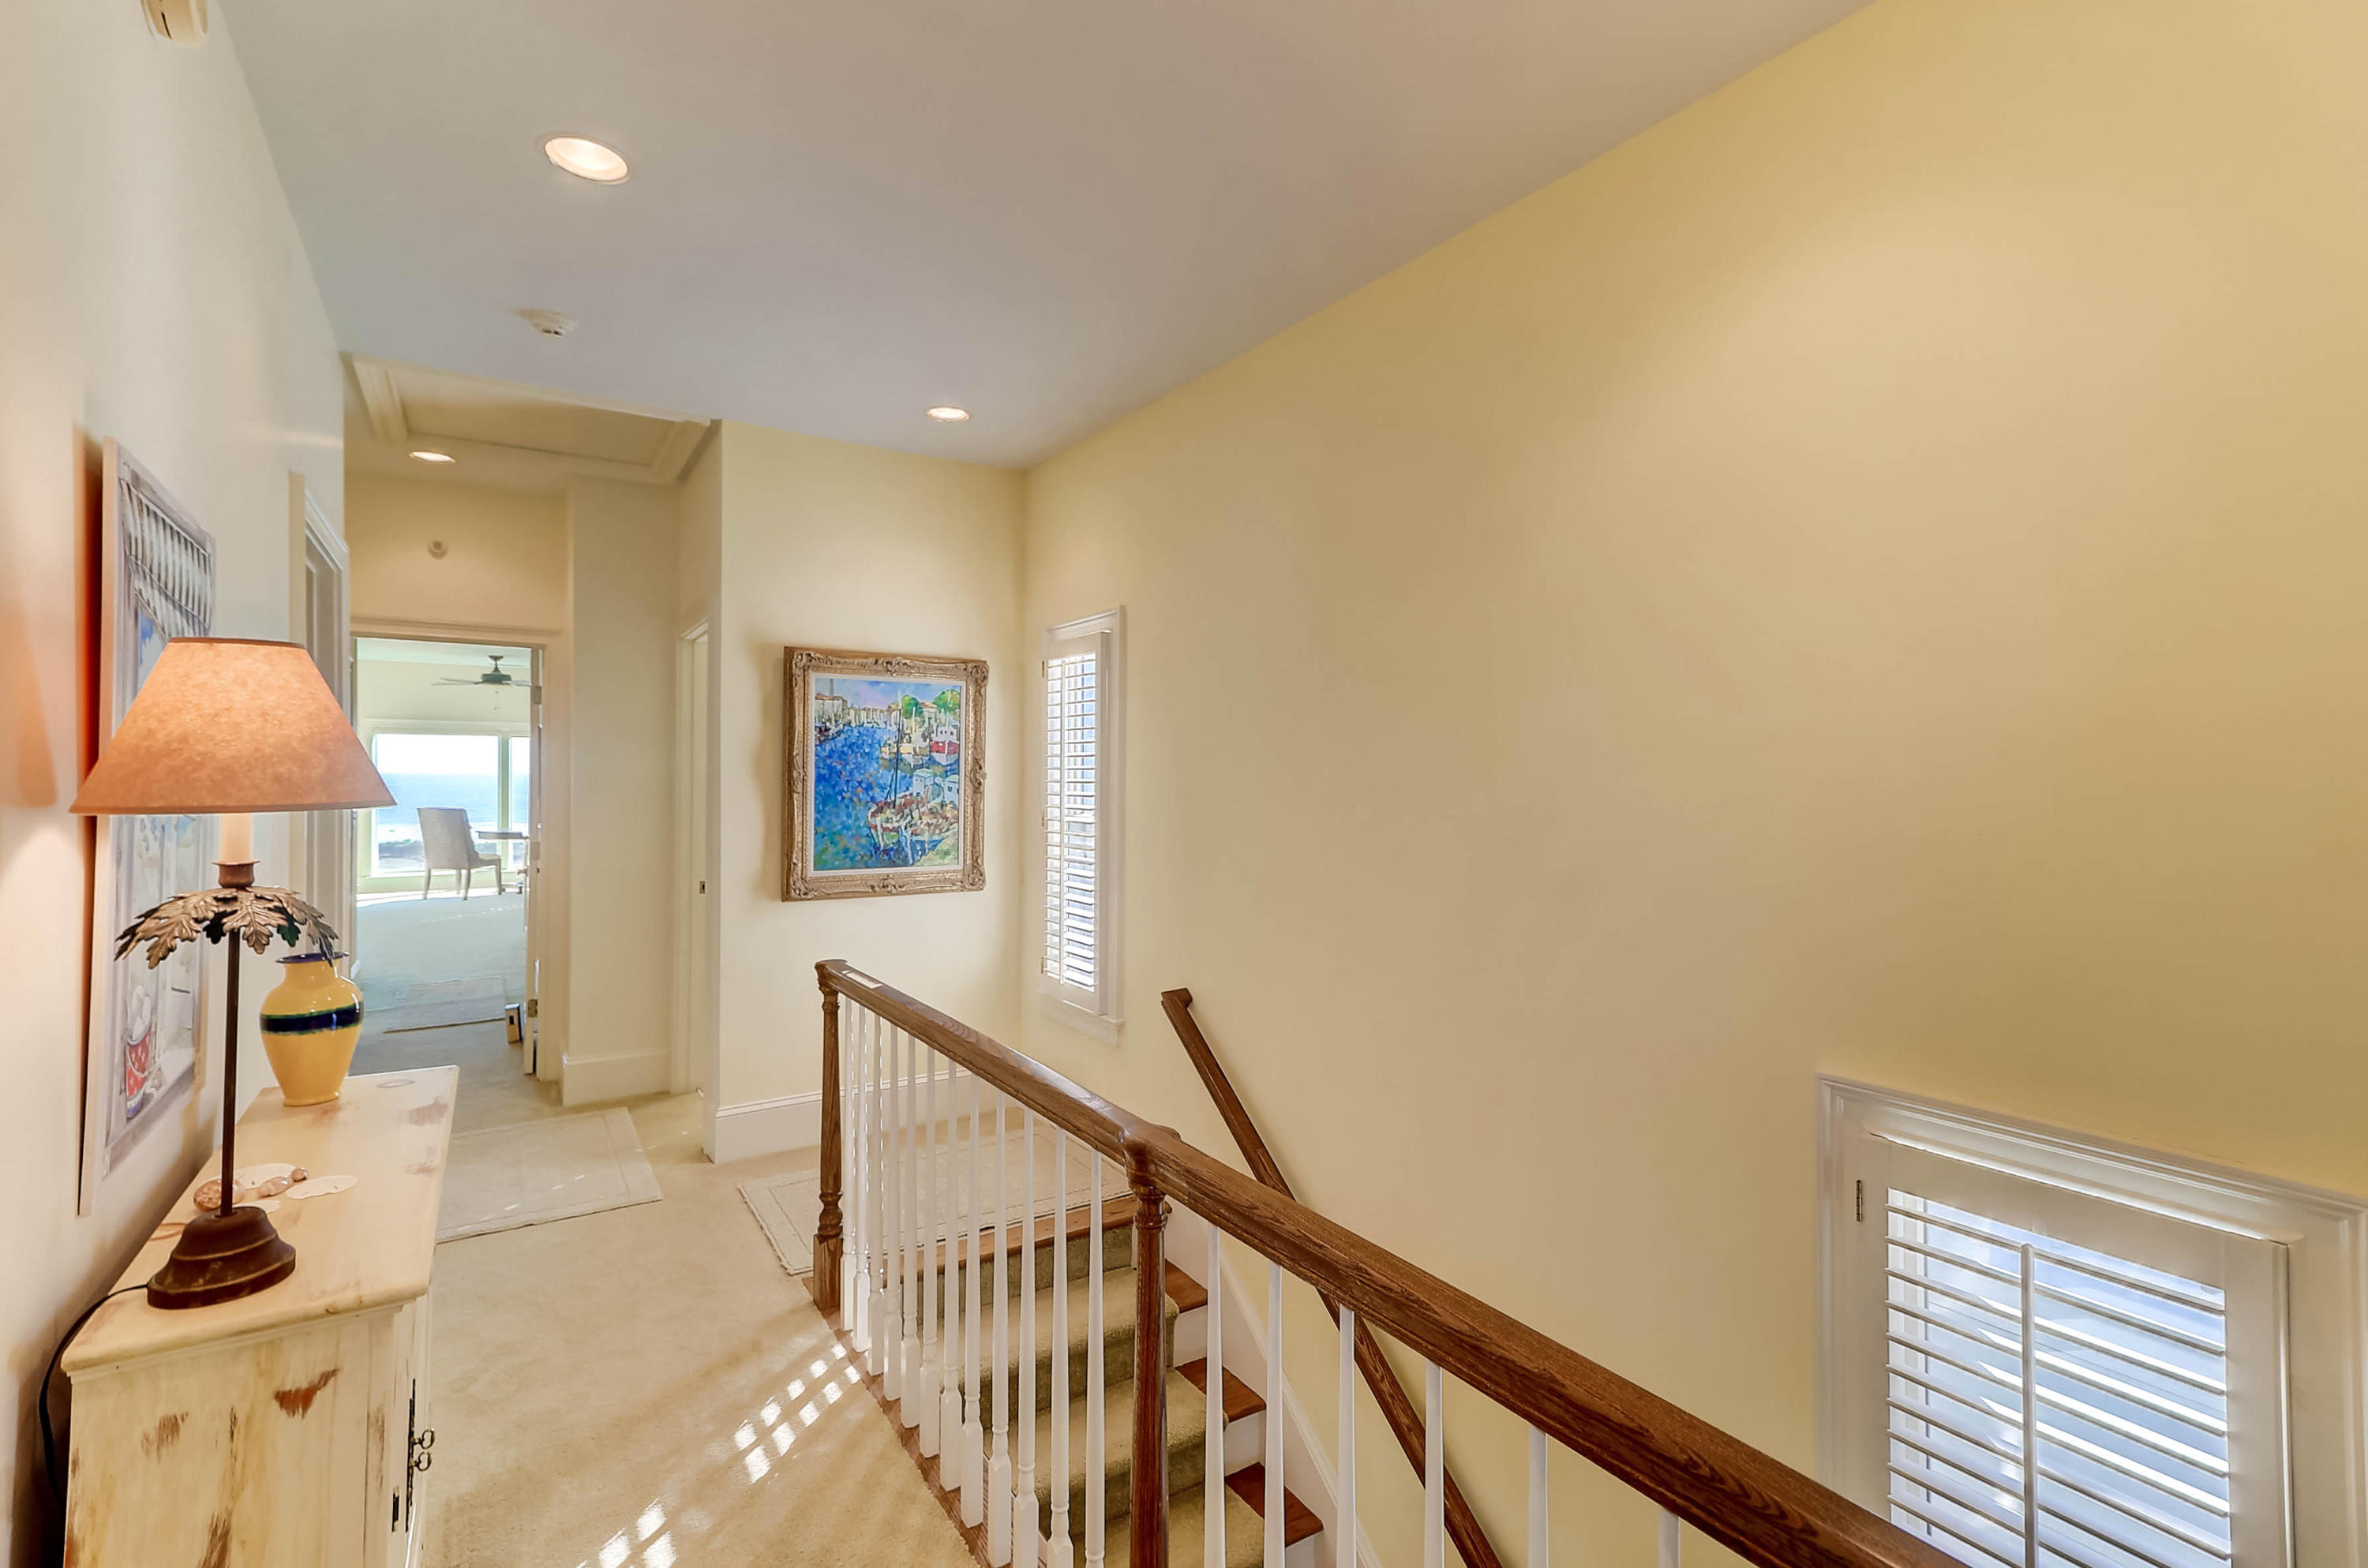 Wild Dunes Homes For Sale - 36 Ocean Point, Isle of Palms, SC - 10